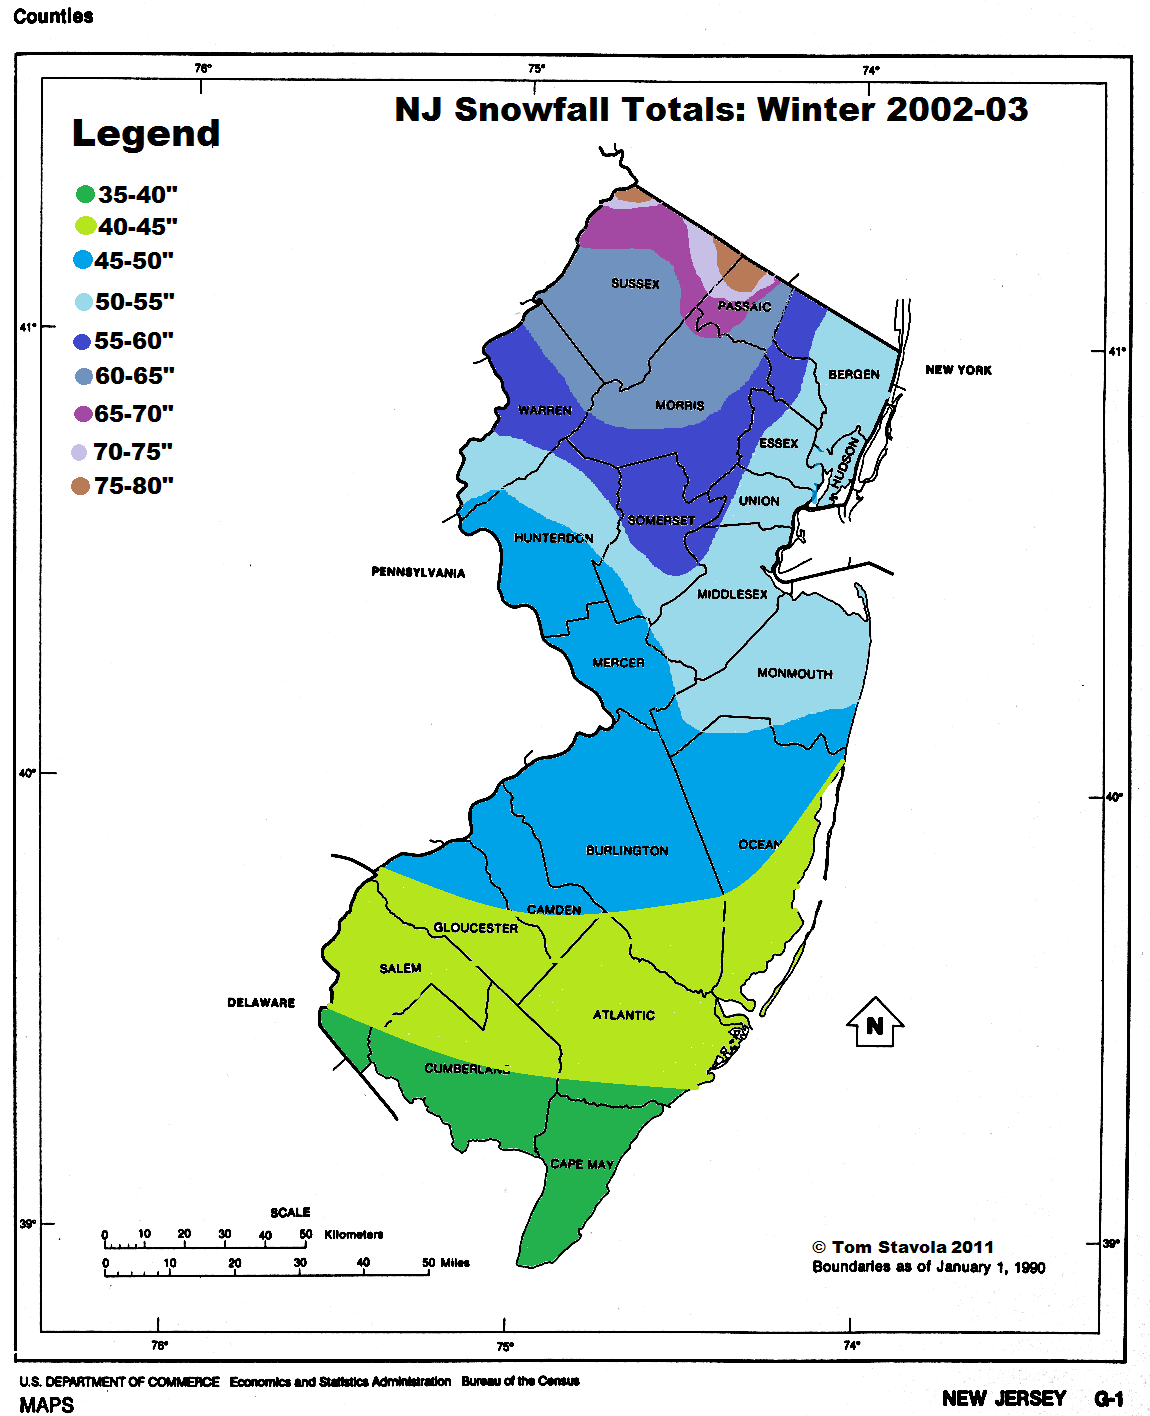 2014 New Jersey Snow Totals